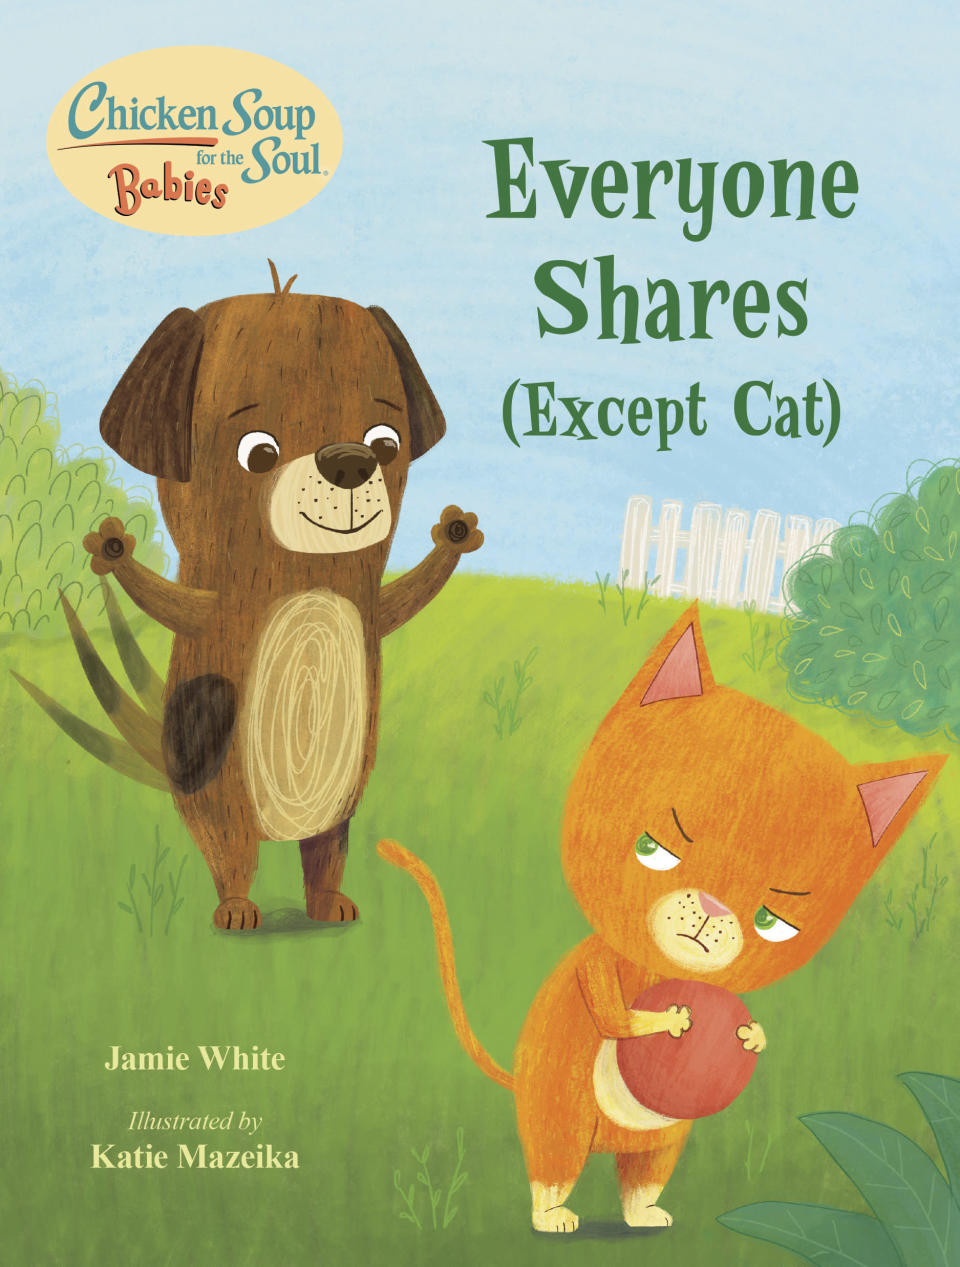 """This cover image released by Charlesbridge shows """"Everyone Shares (Except Cat)"""" by Jamie White. Chicken Soup for the Soul has reached a partnership with the children's publisher Charlesbridge for two new series of books, the two publishers announced Tuesday. Chicken Soup for the Soul Babies will be for babies and toddlers, up to age 3, and Chicken Soup for the Soul Kids will be for ages 4-7. (Charlesbridge via AP)"""